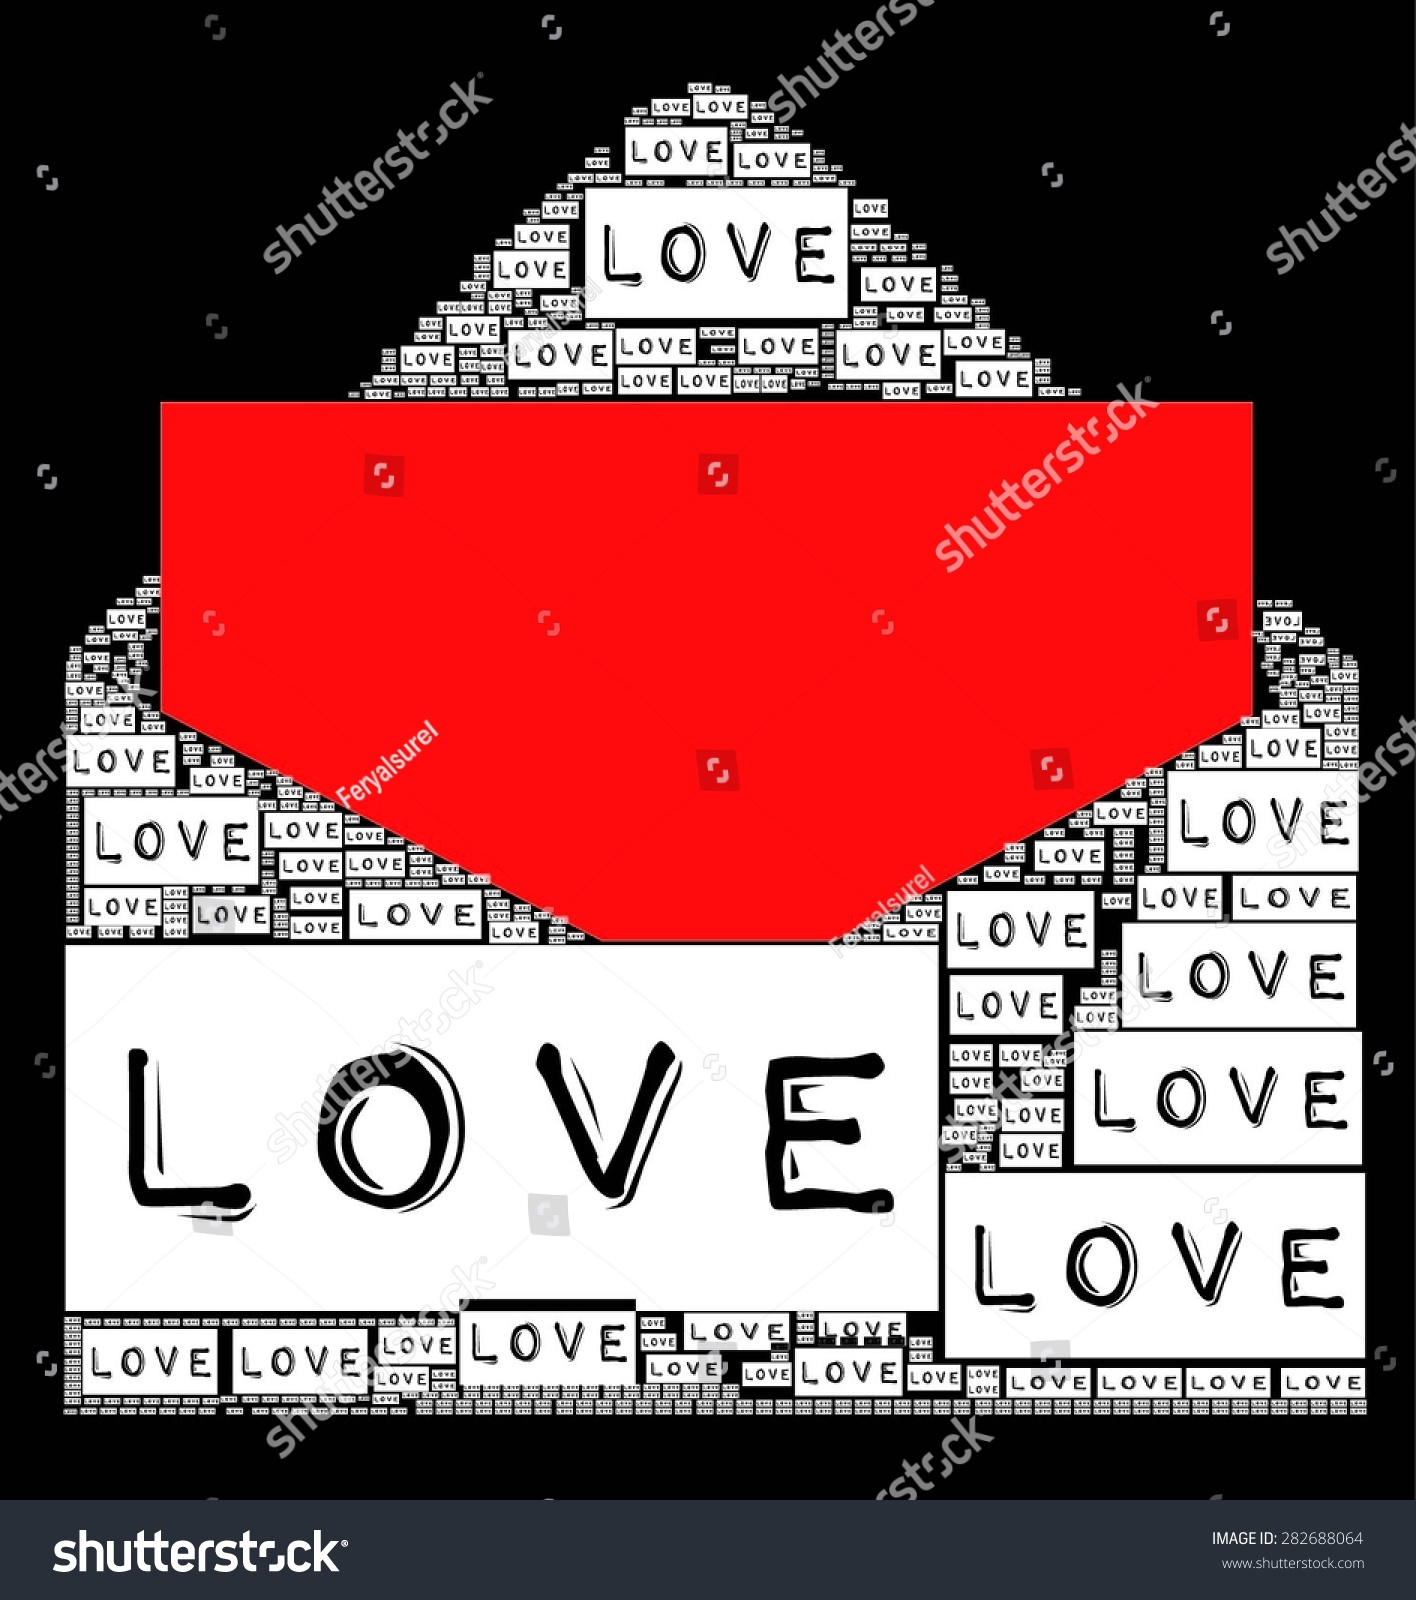 Shirt design envelope - Red Color Love Letter With Love Text Become An Envelope And Black White Together For Valentines